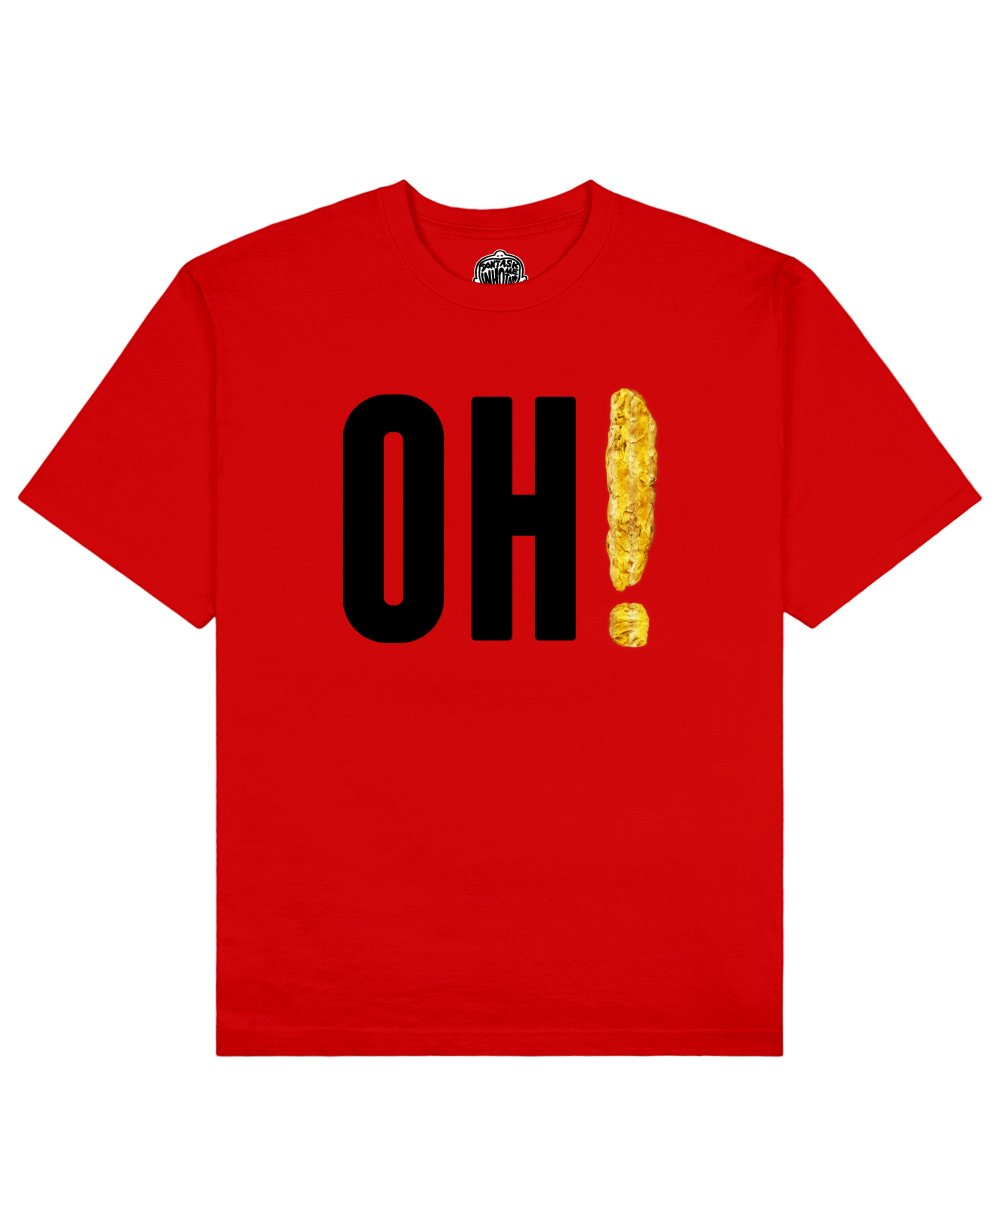 OH! Print T-shirt in Red - T-Shirts - Don't ask me who I am - BRANMA